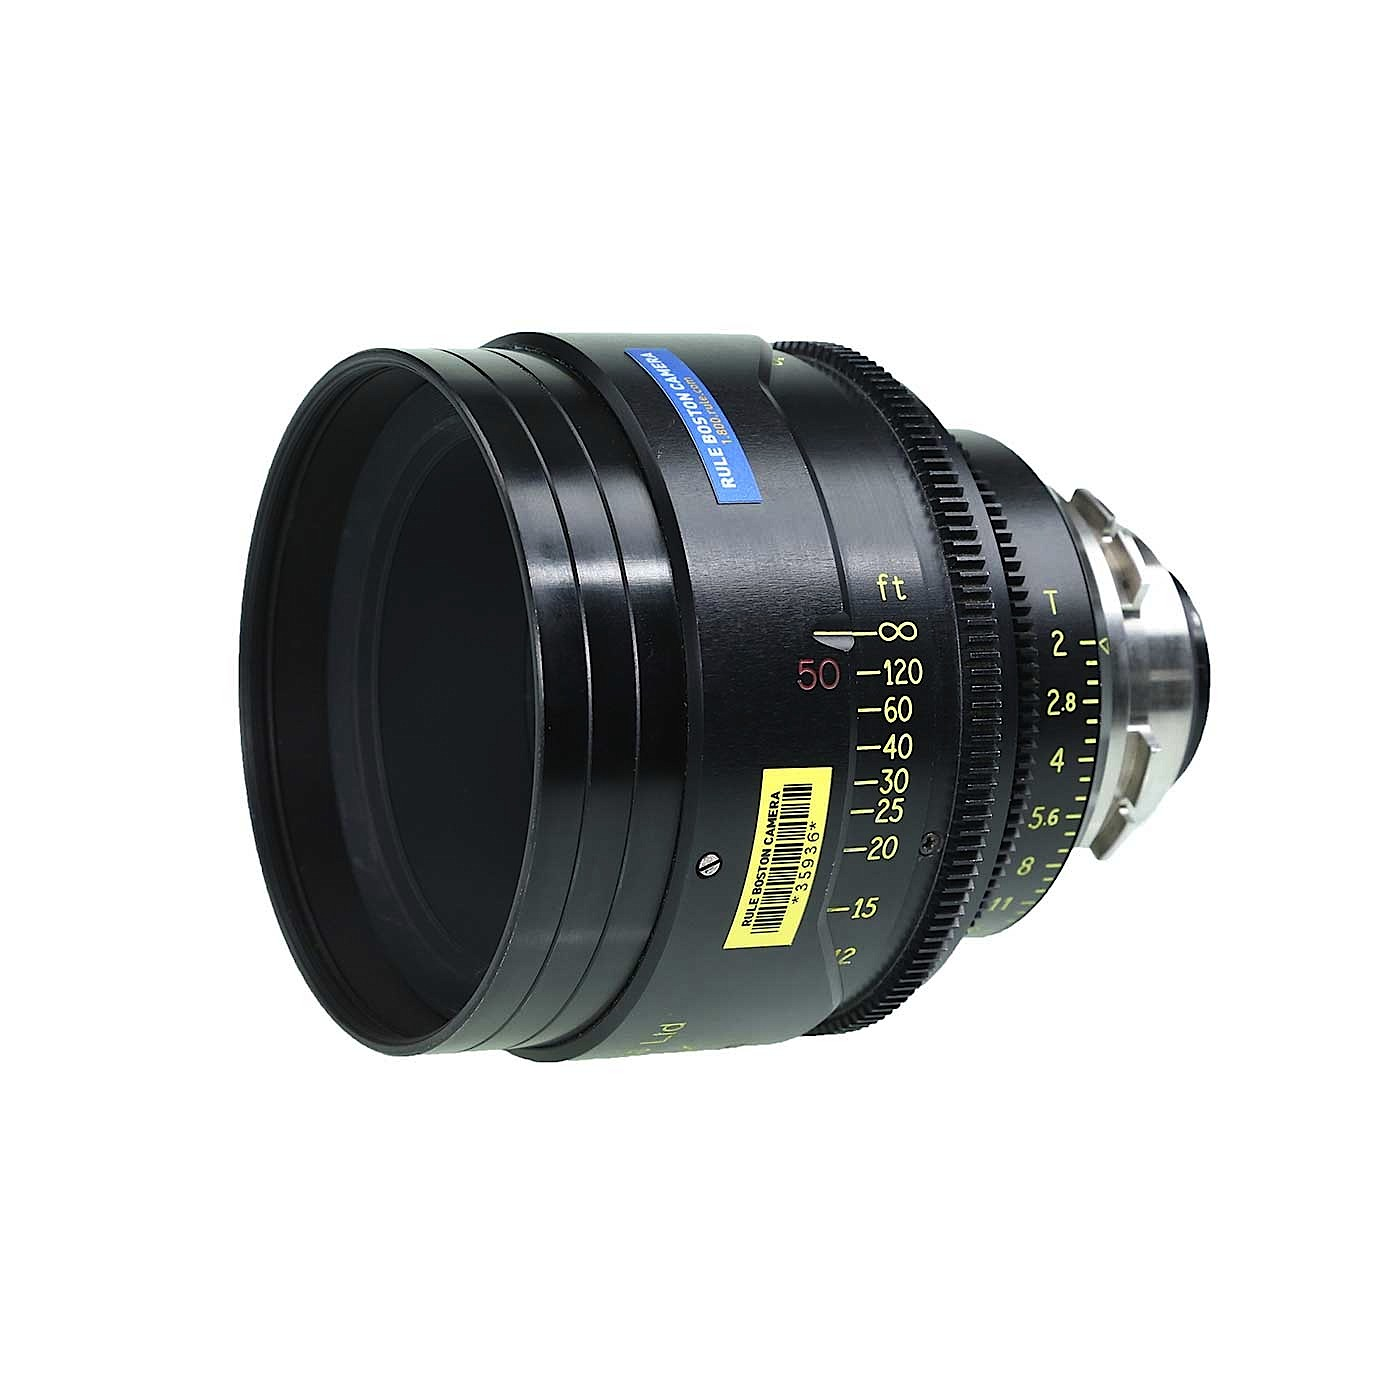 Cooke 50mm S4 PL Prime Lens